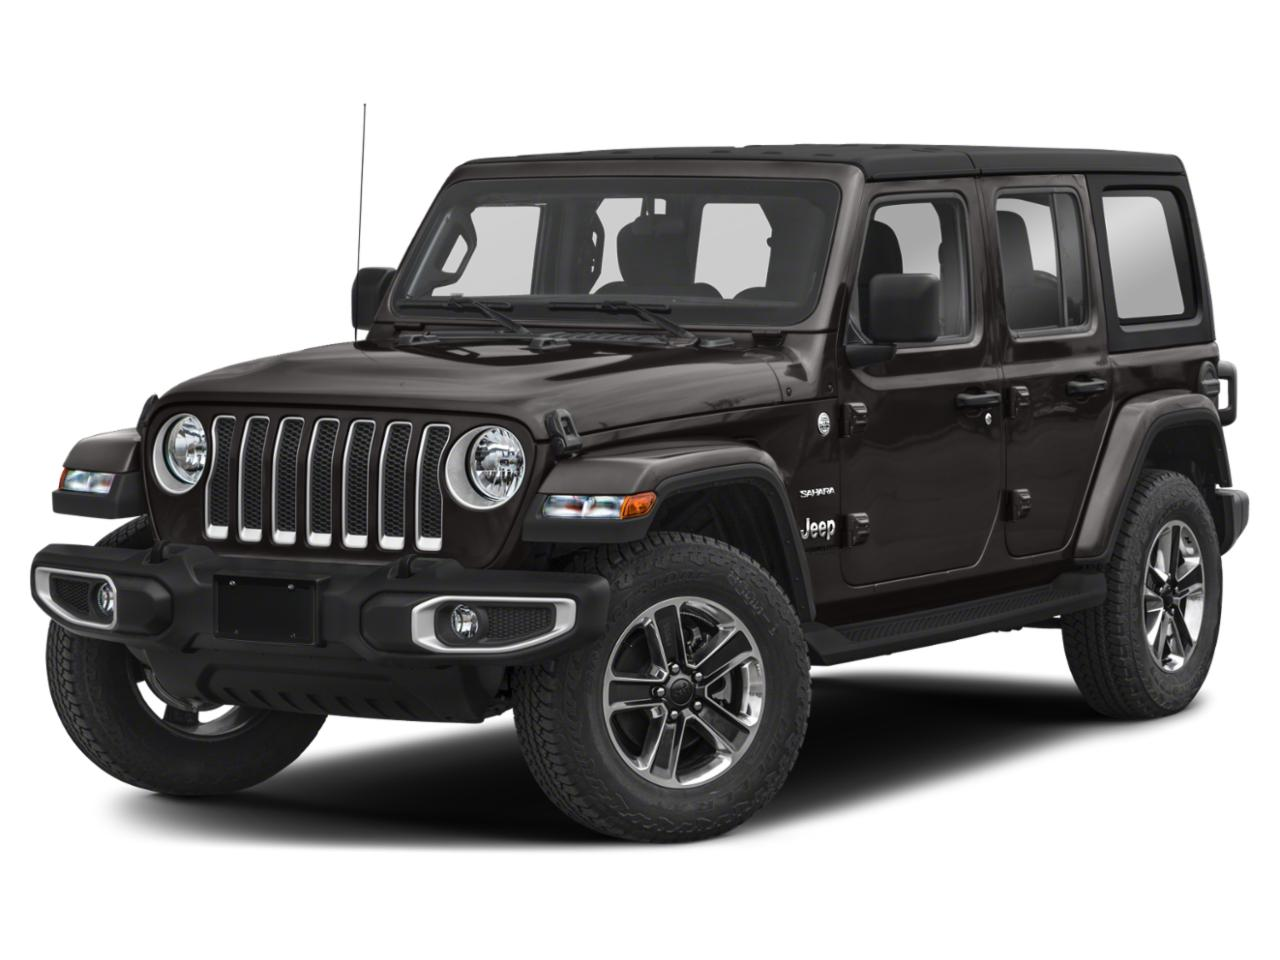 2018 Jeep Wrangler Unlimited Vehicle Photo in Gainesville, GA 30504